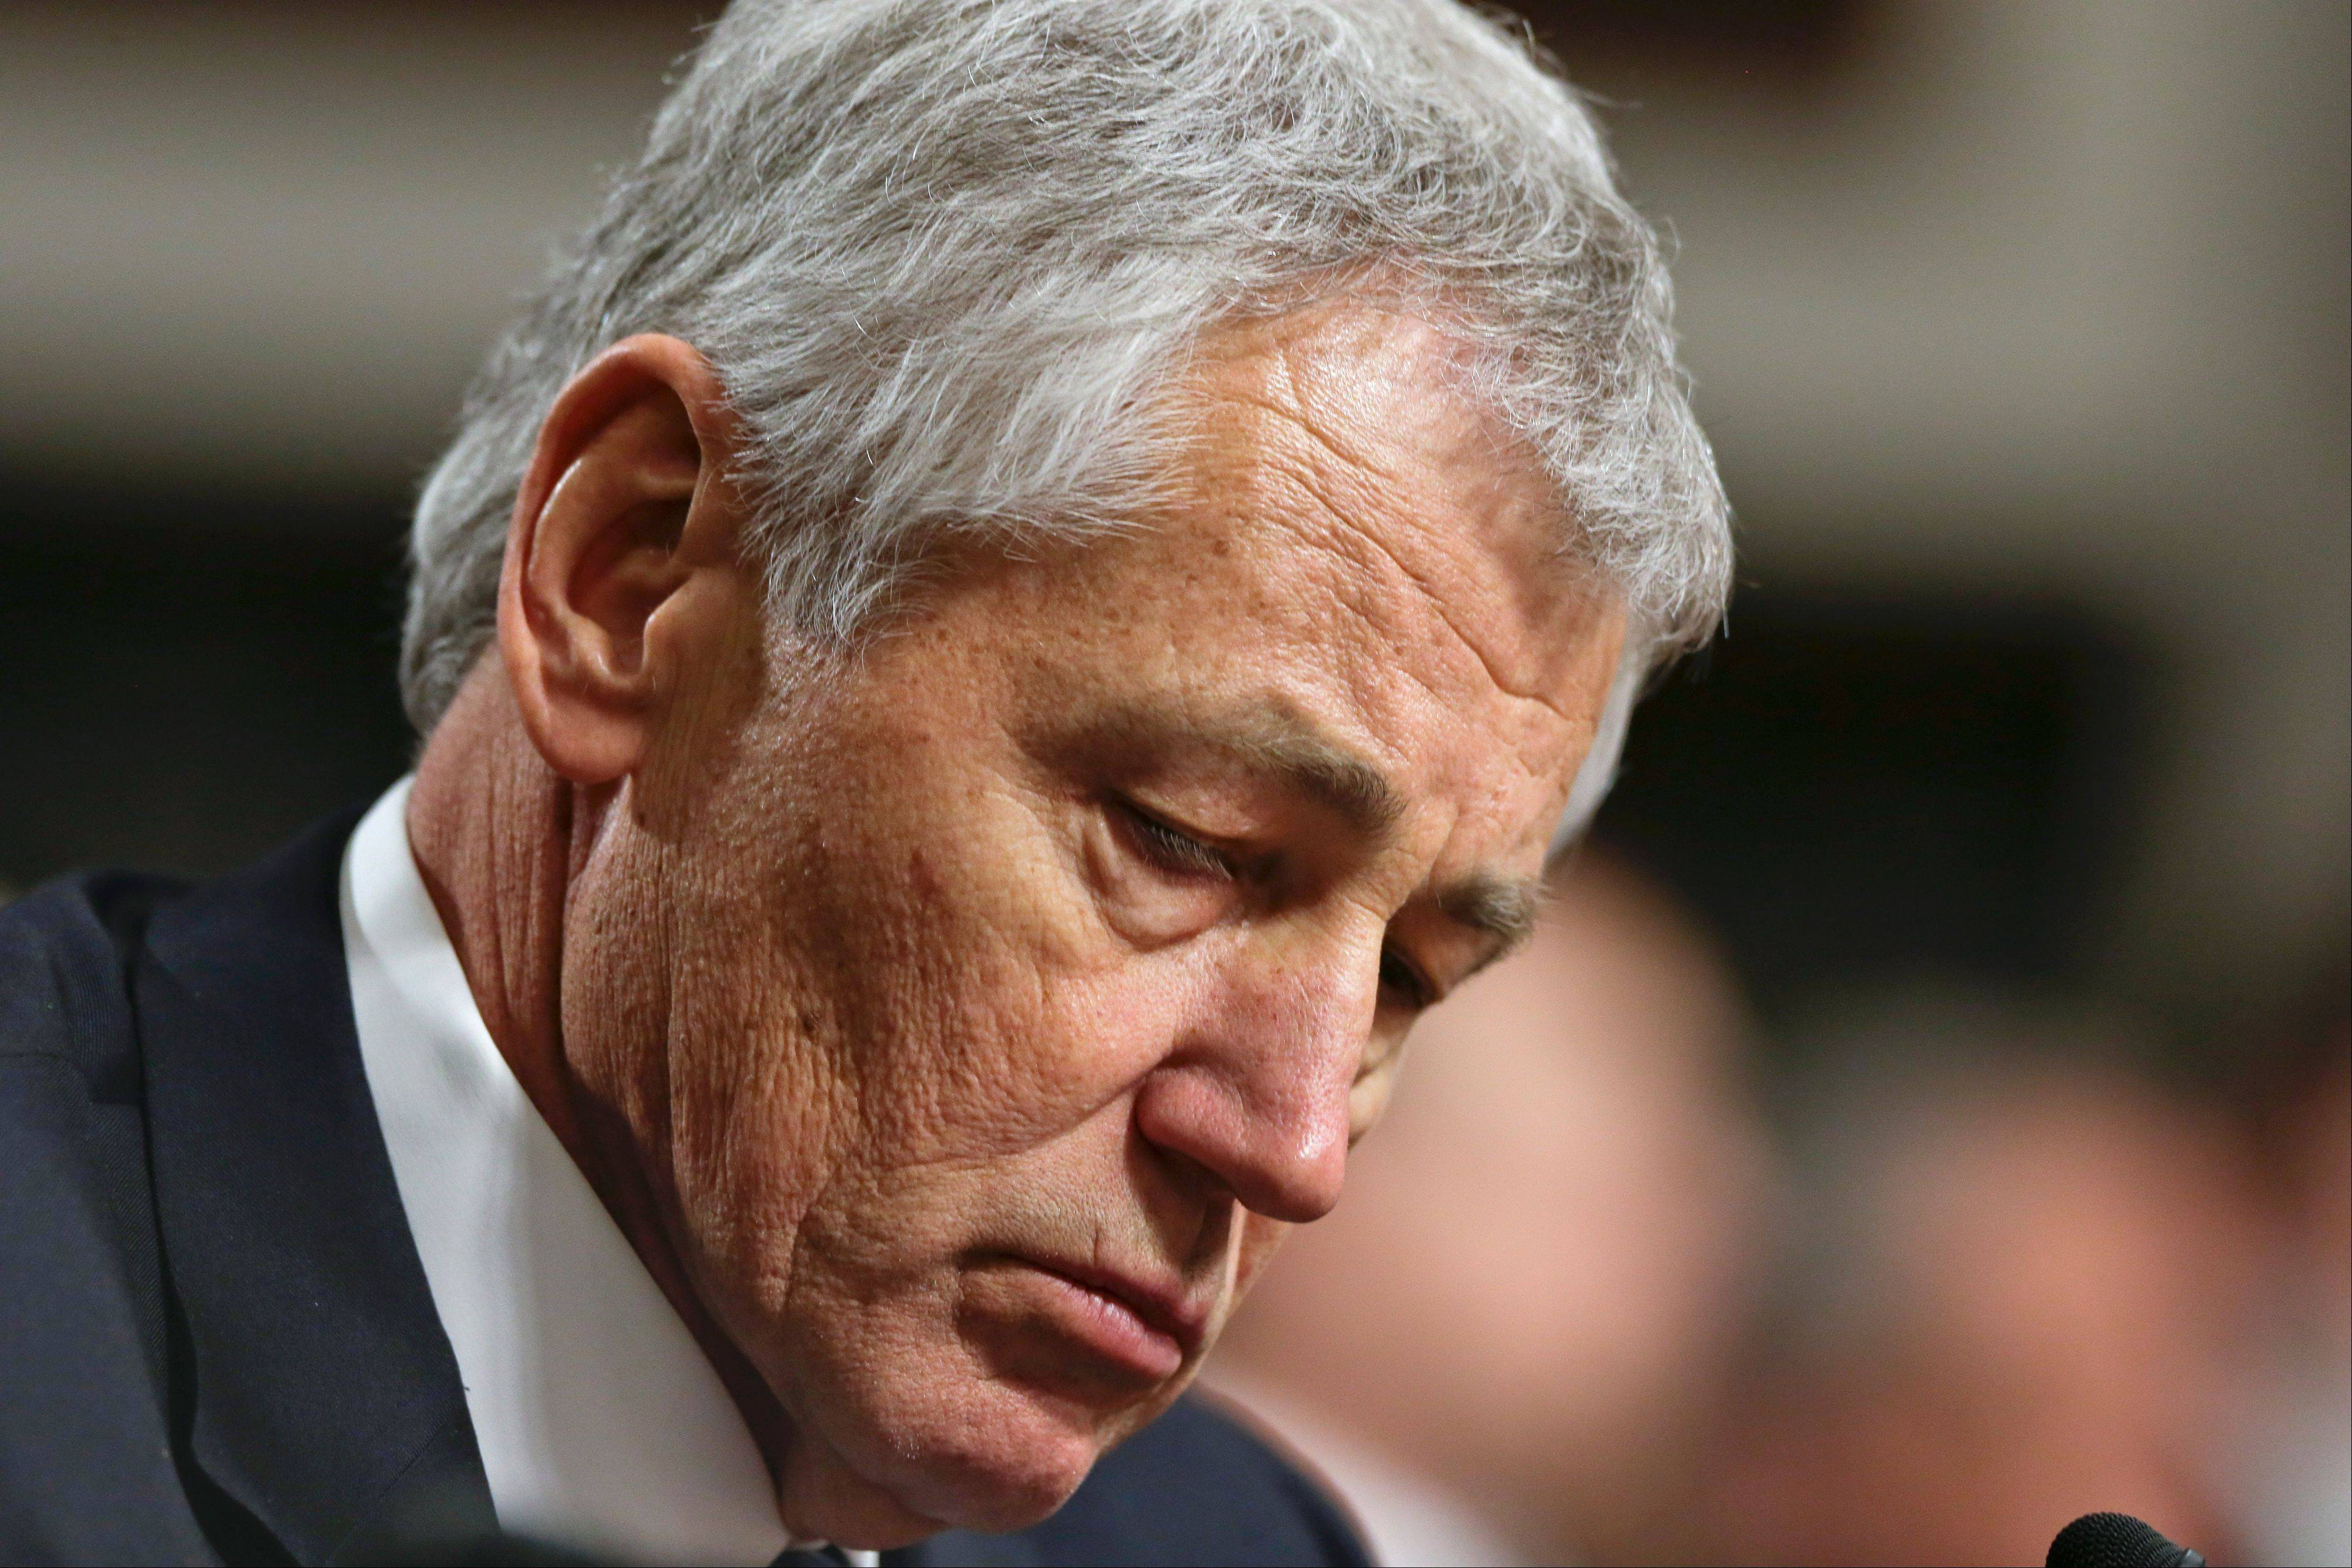 Republican Chuck Hagel, a former two-term GOP senator from Nebraska and President Obama�s choice for Defense Secretary, testifies before the Senate Armed Services Committee during his confirmation hearing on Capitol Hill in Washington.